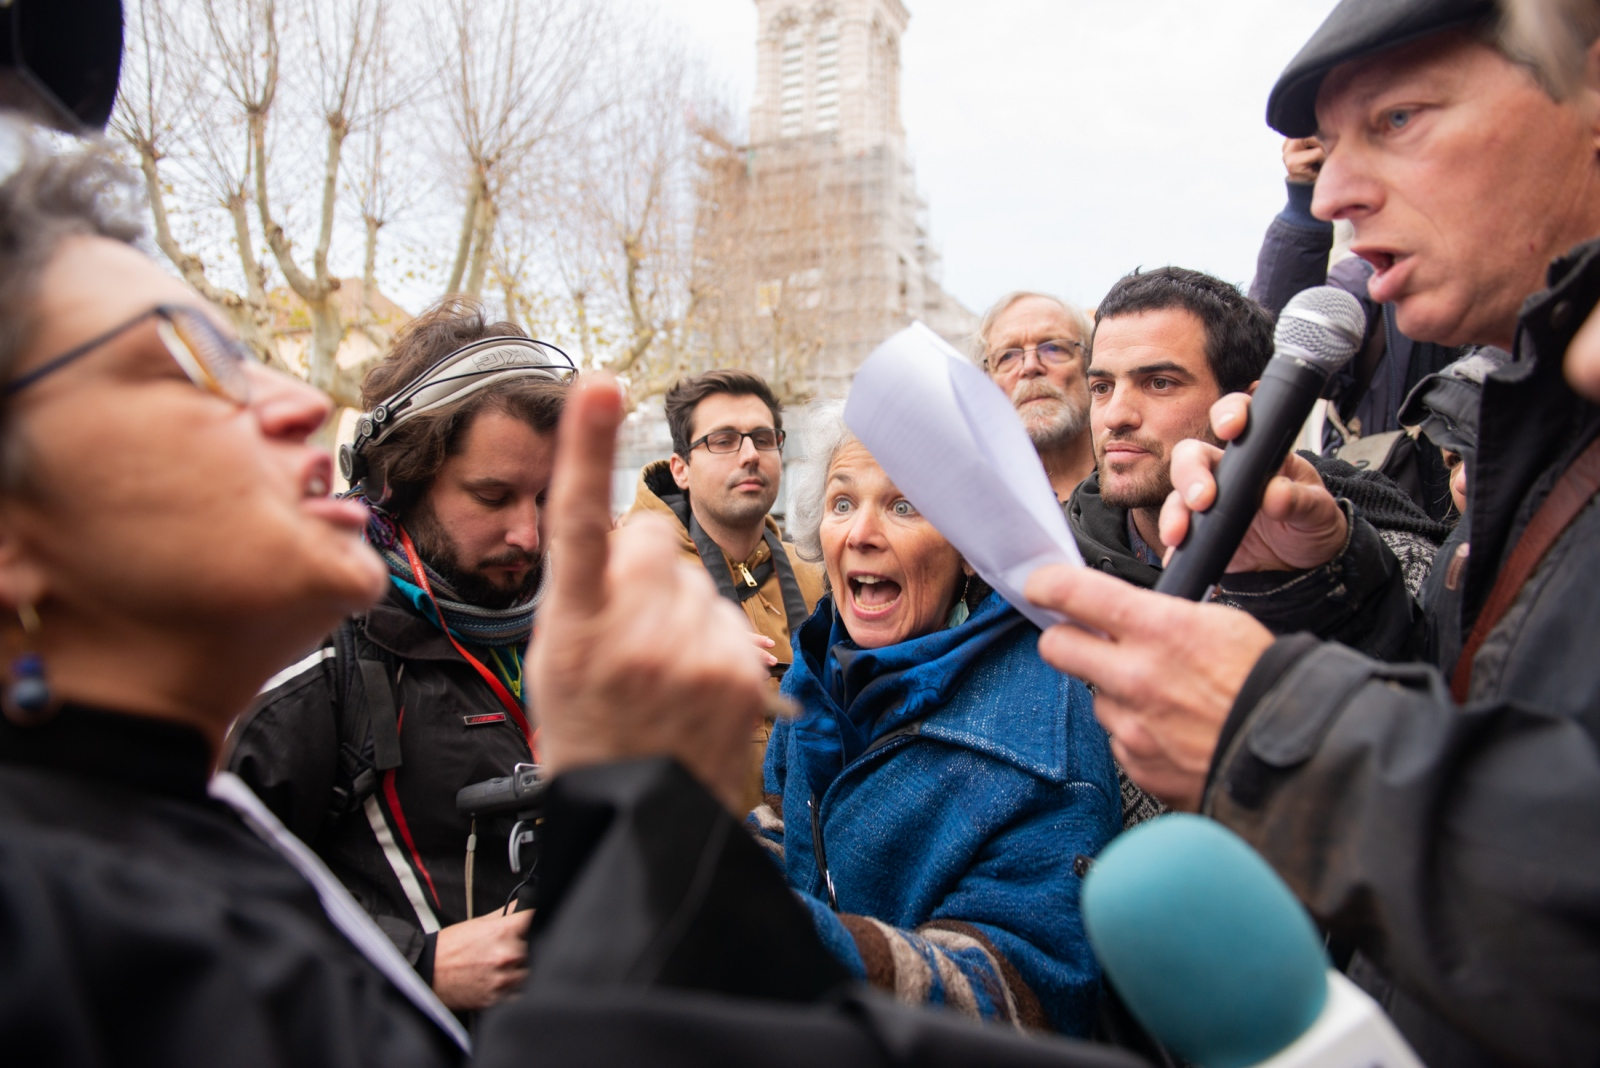 The judge (L) had just condemned the 3+4 group for supposedly helping migrants cross the border into Italy during an anti- far-right march. She walked out into the street while one of the condemned, Benoit, was giving a speech to supporters. Gap - France. December 13, 2018.